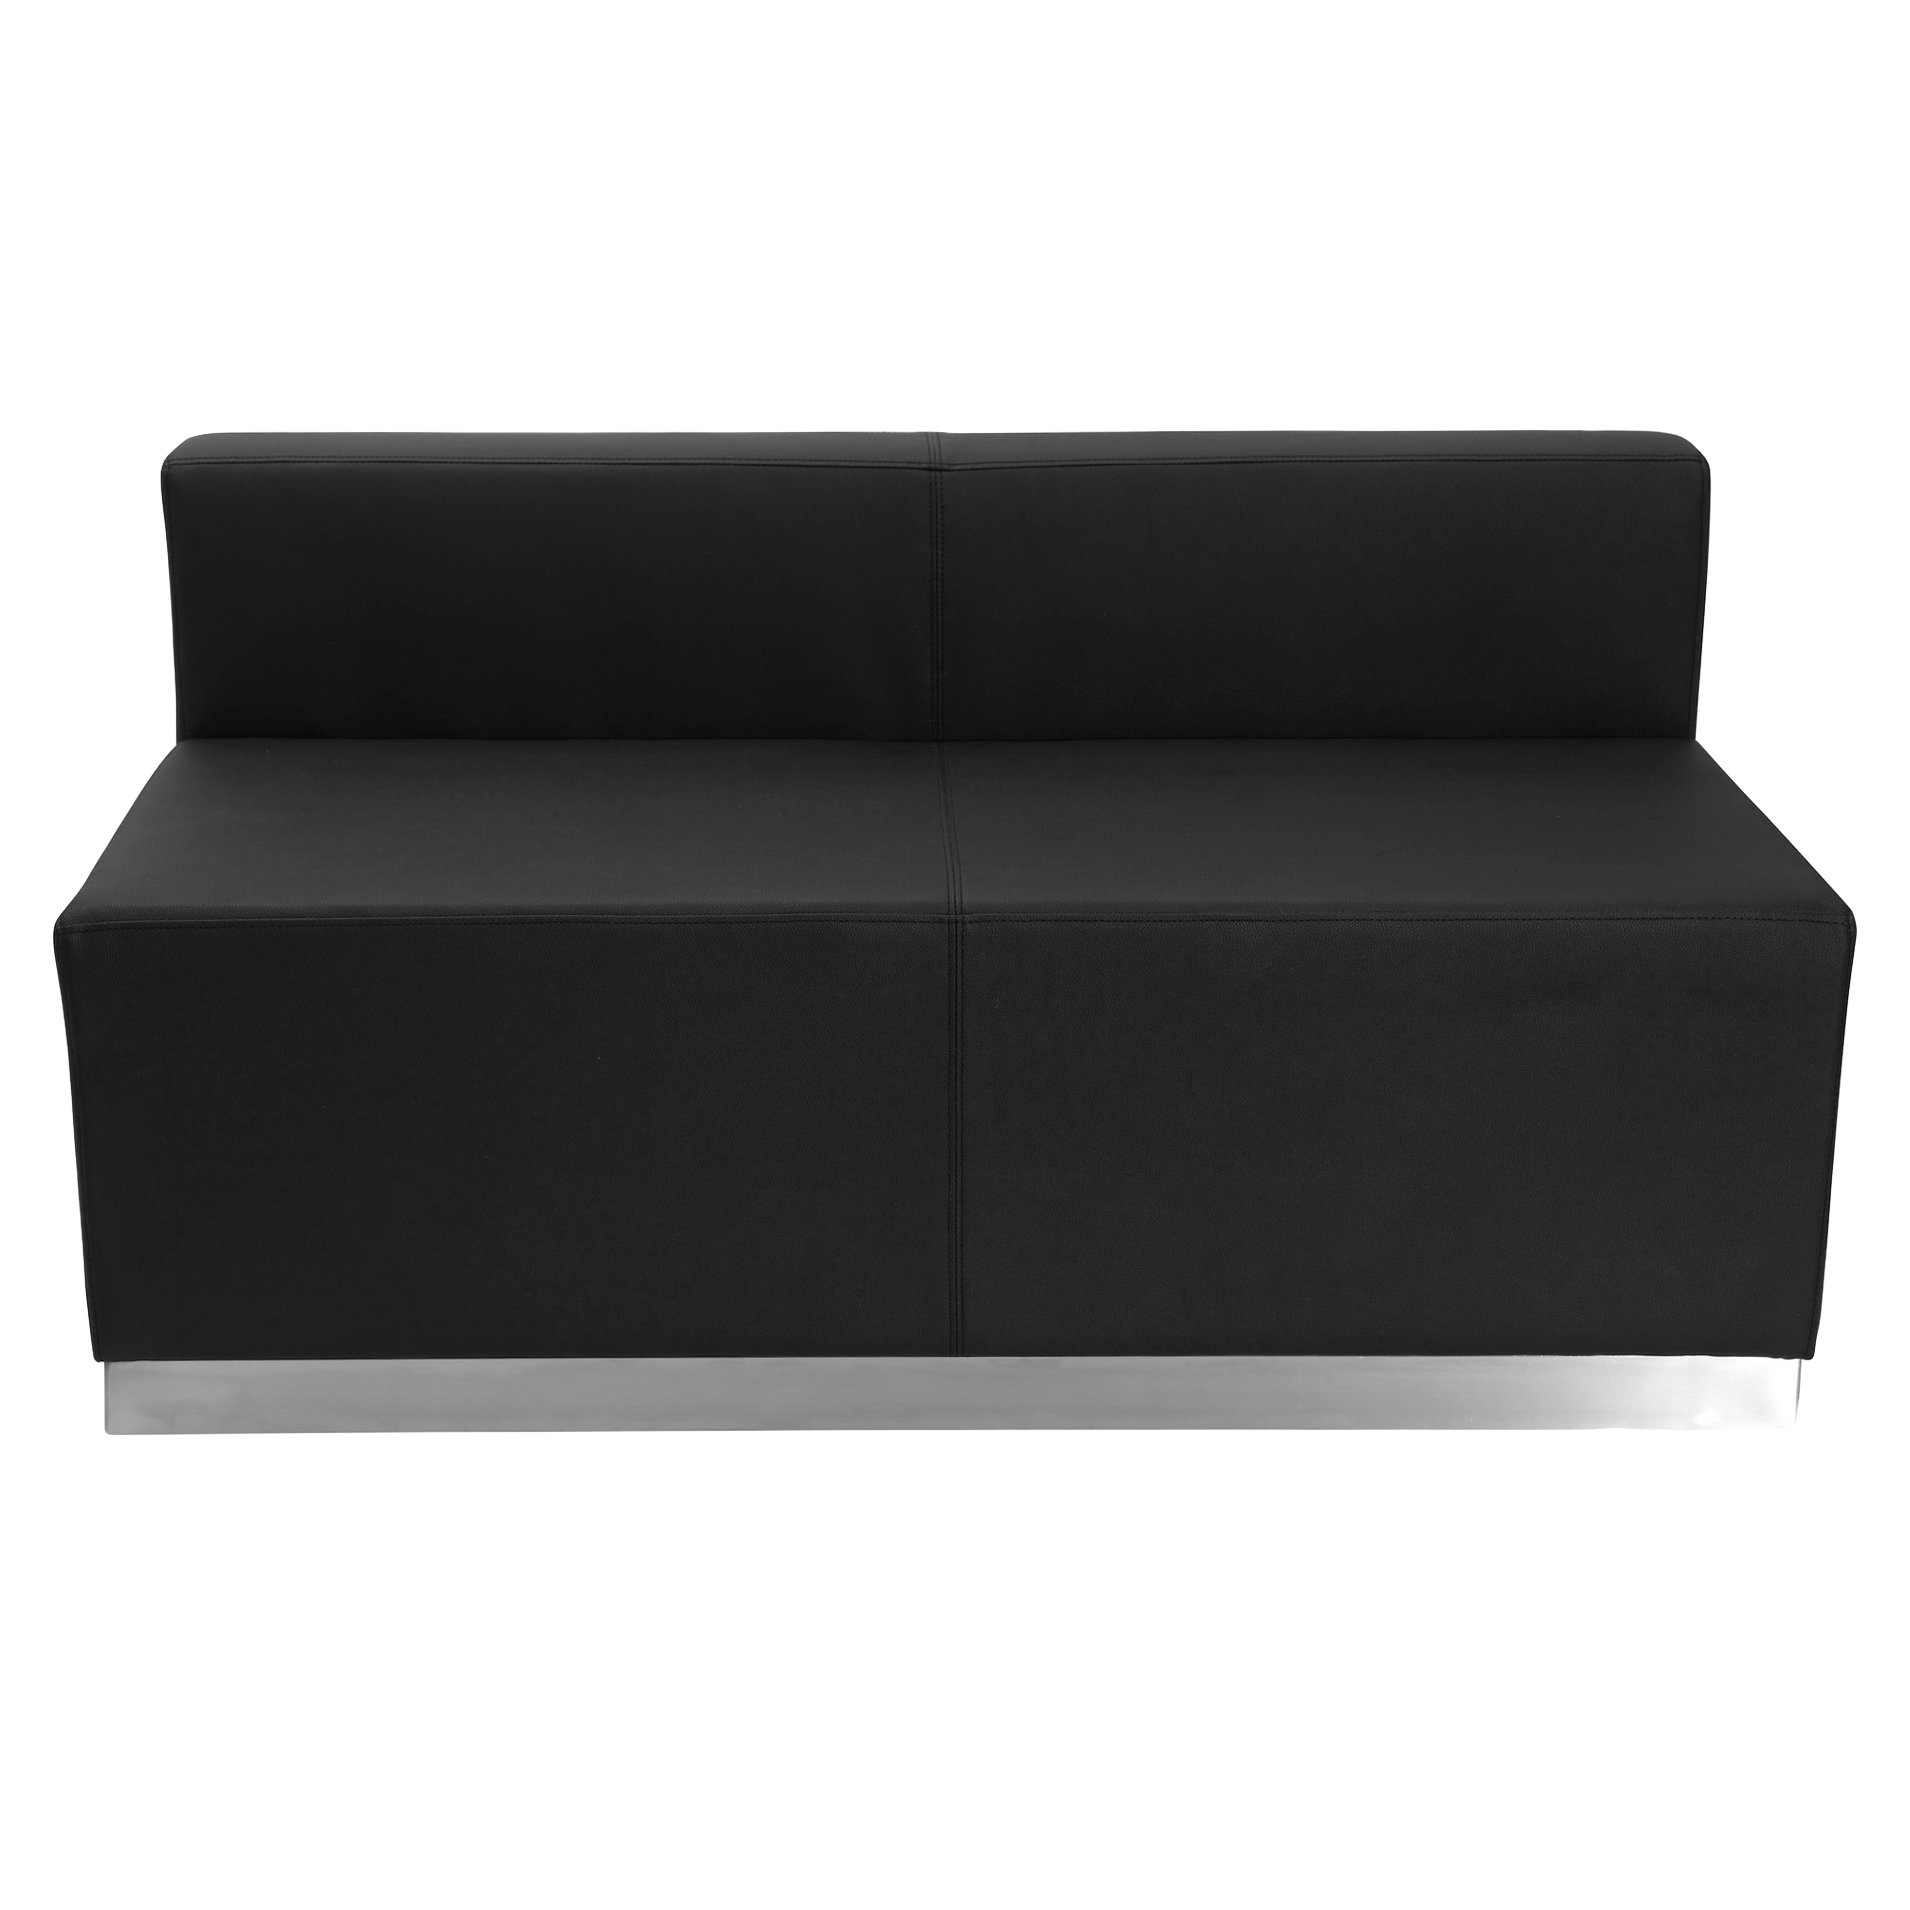 Flash Furniture HERCULES Alon Series Black Leather Loveseat with Brushed Stainless Steel Base by Flash Furniture